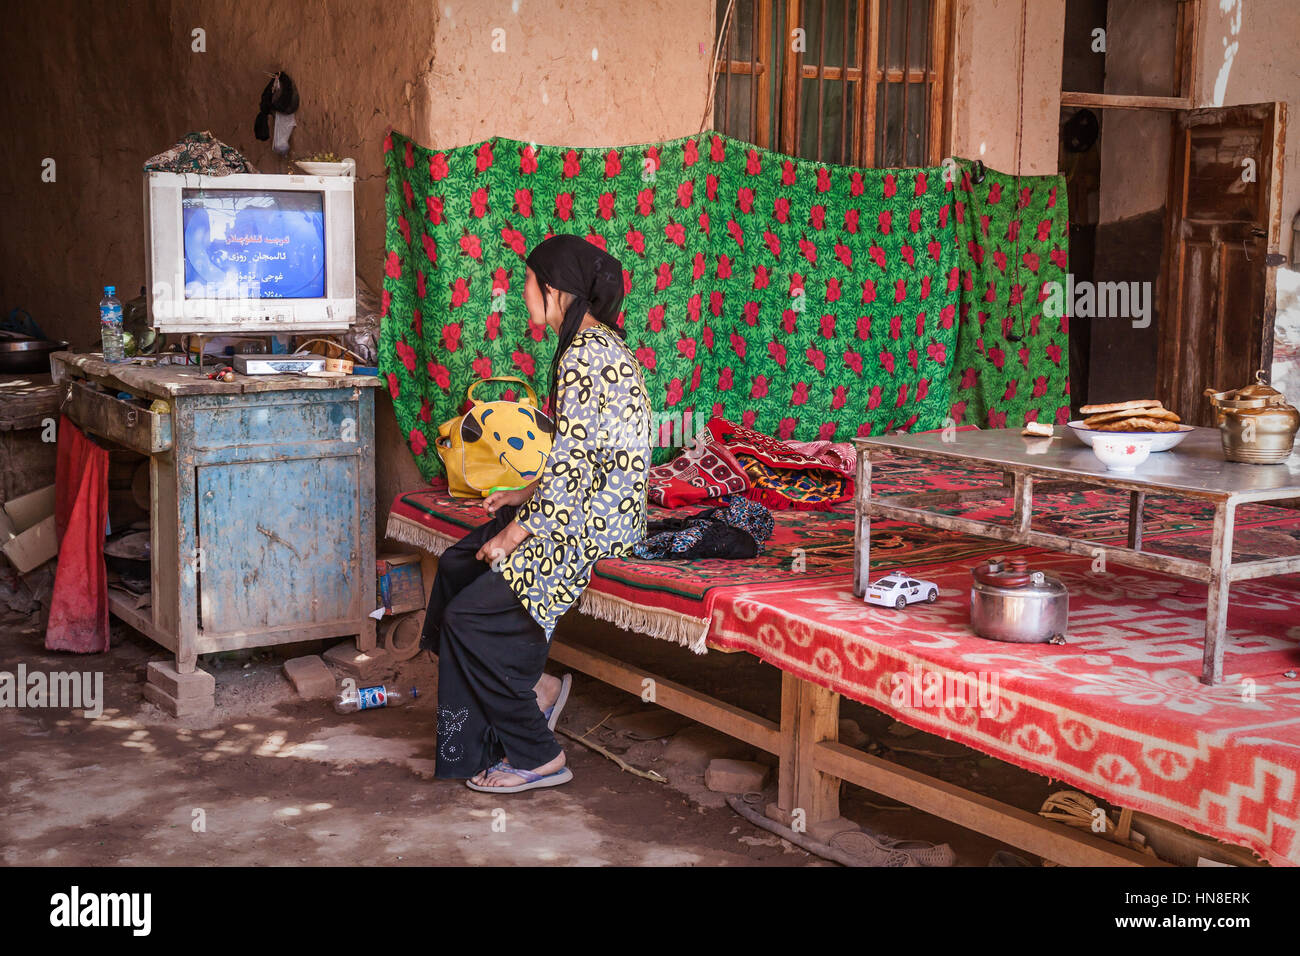 Young woman watching tv, inside Uighur house, Toyuq Village, Xinjiang, China. - Stock Image